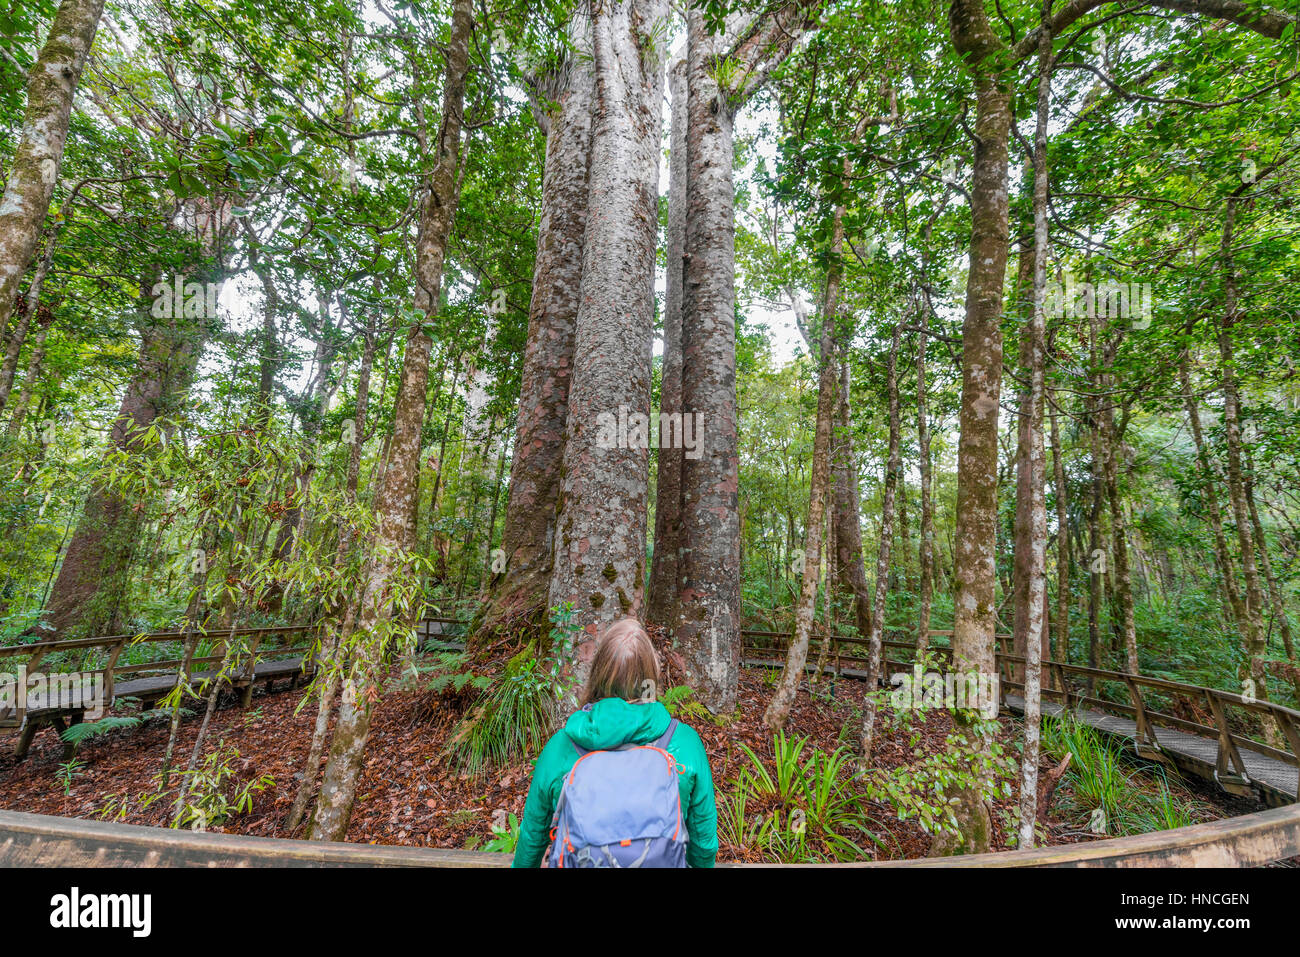 Tourist in front of four Kauri trees (Agathis australis) standing together, The Four Sisters, Waipoua forest, Northland - Stock Image